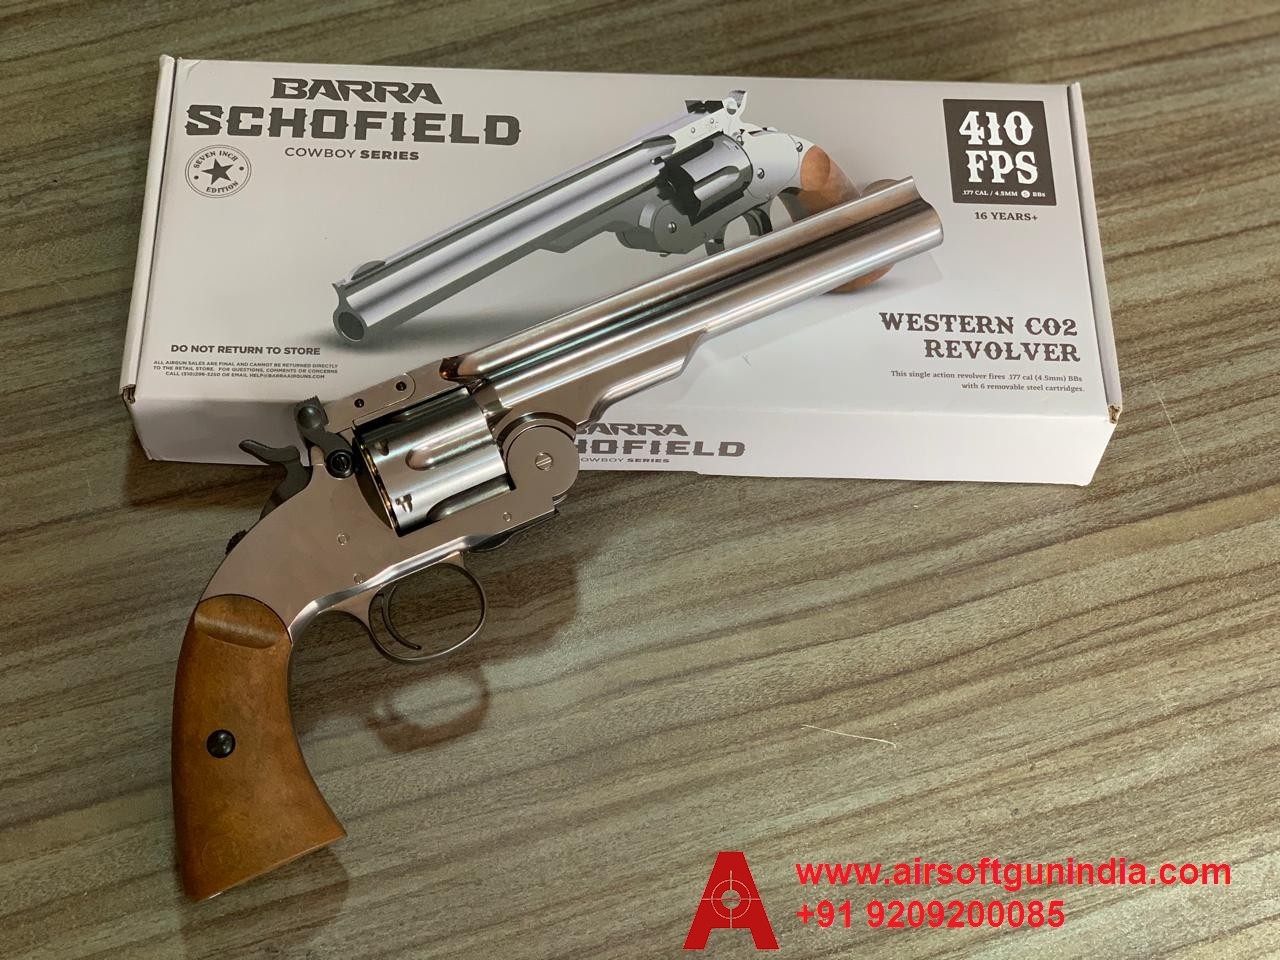 Barra Airguns Schofield No. 3 Revolver - .177 CO2 Full Metal Air Revolver - Chrome Finish